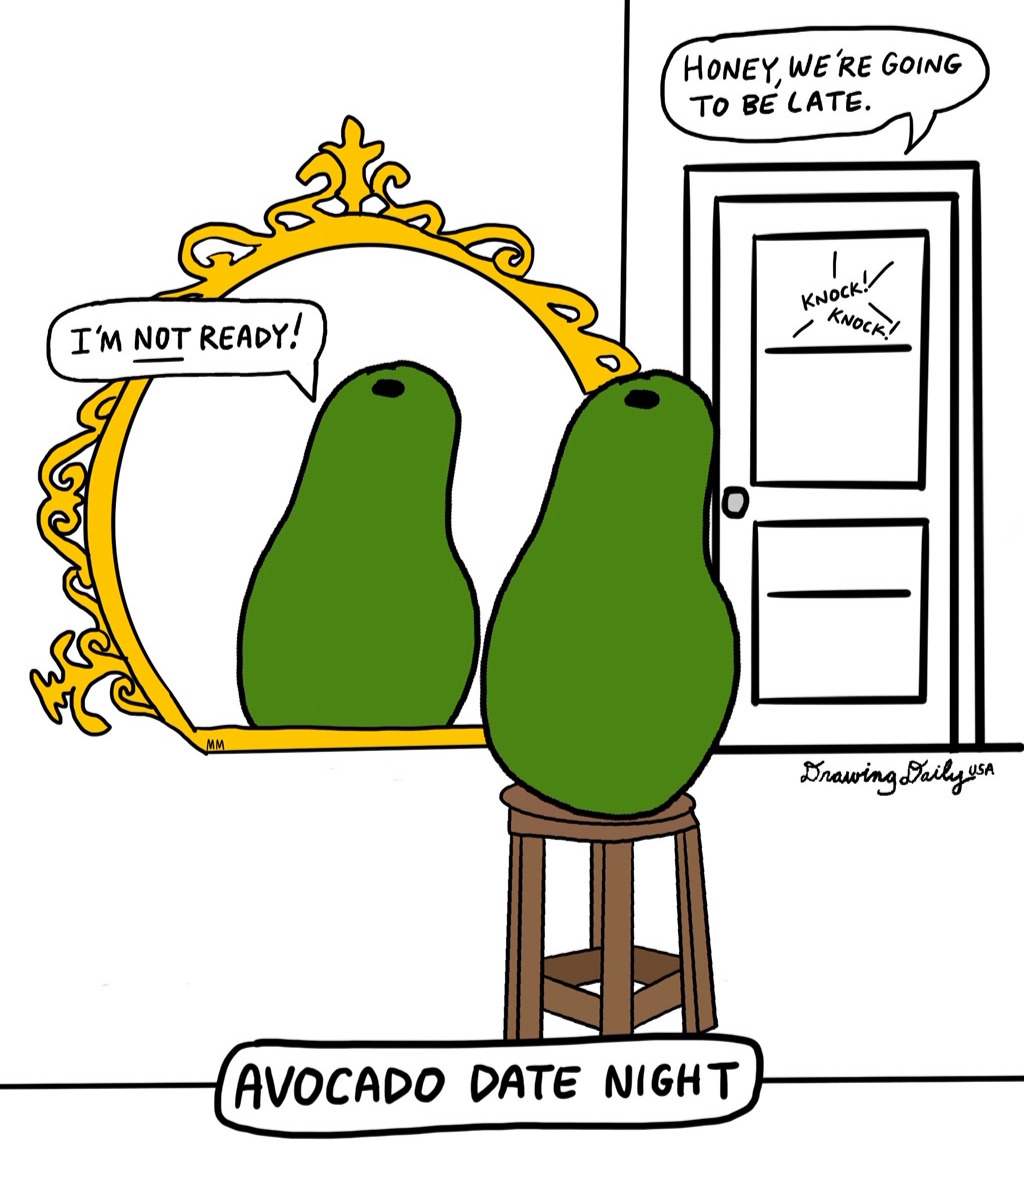 Avocado Date Night